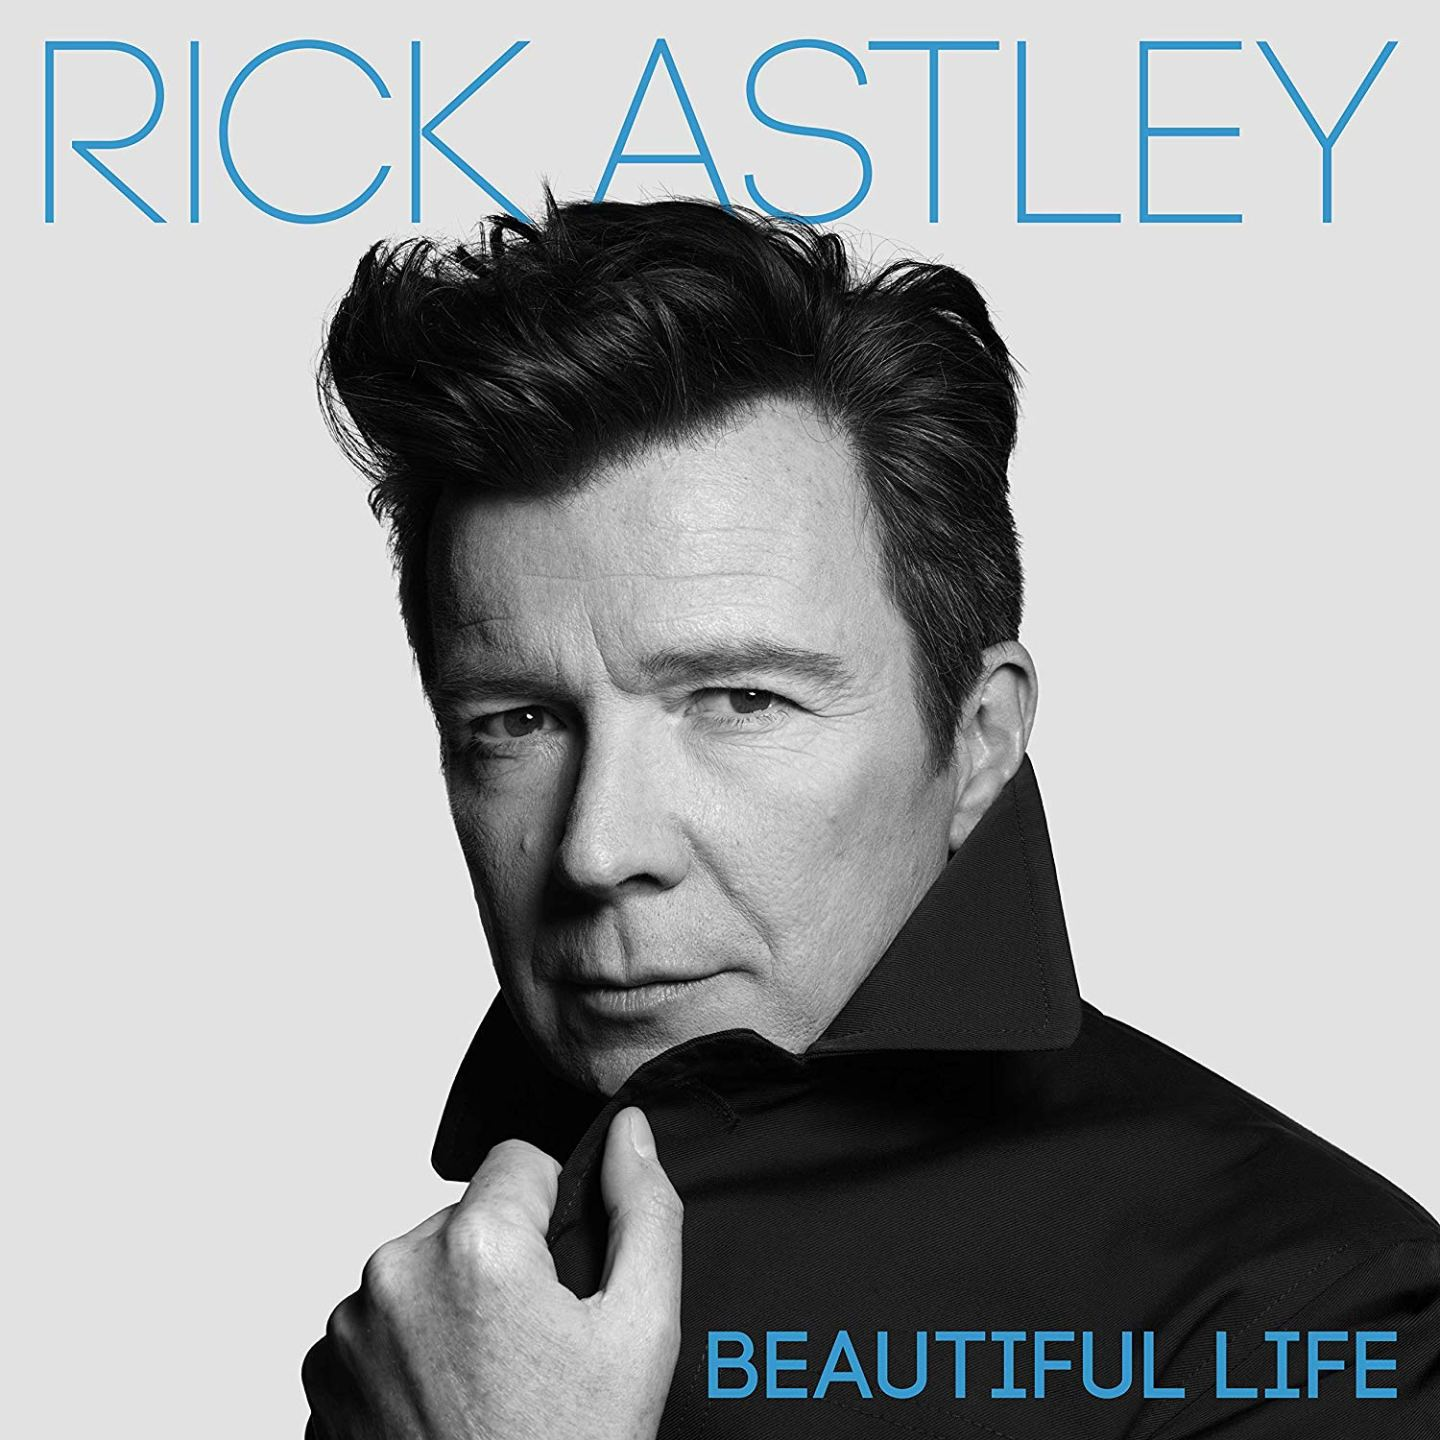 REVIEW: 'Beautiful Life' - Rick Astley